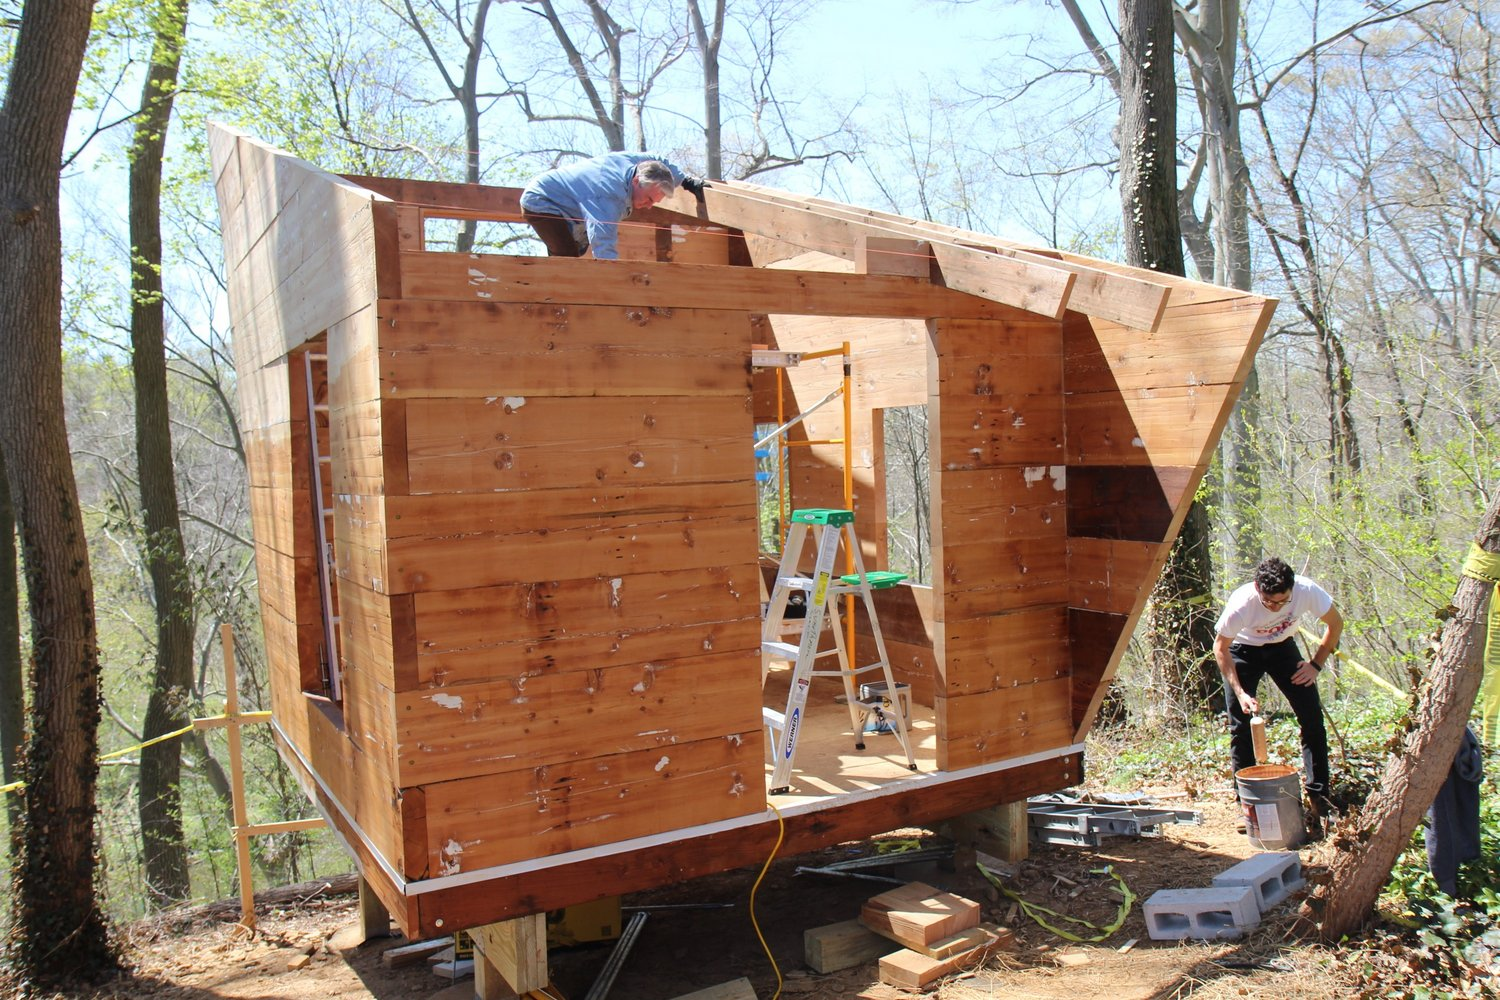 Professor Randall Exon and students assisting in the creation of the Jonathan Malloy '14 Oxbow structure.